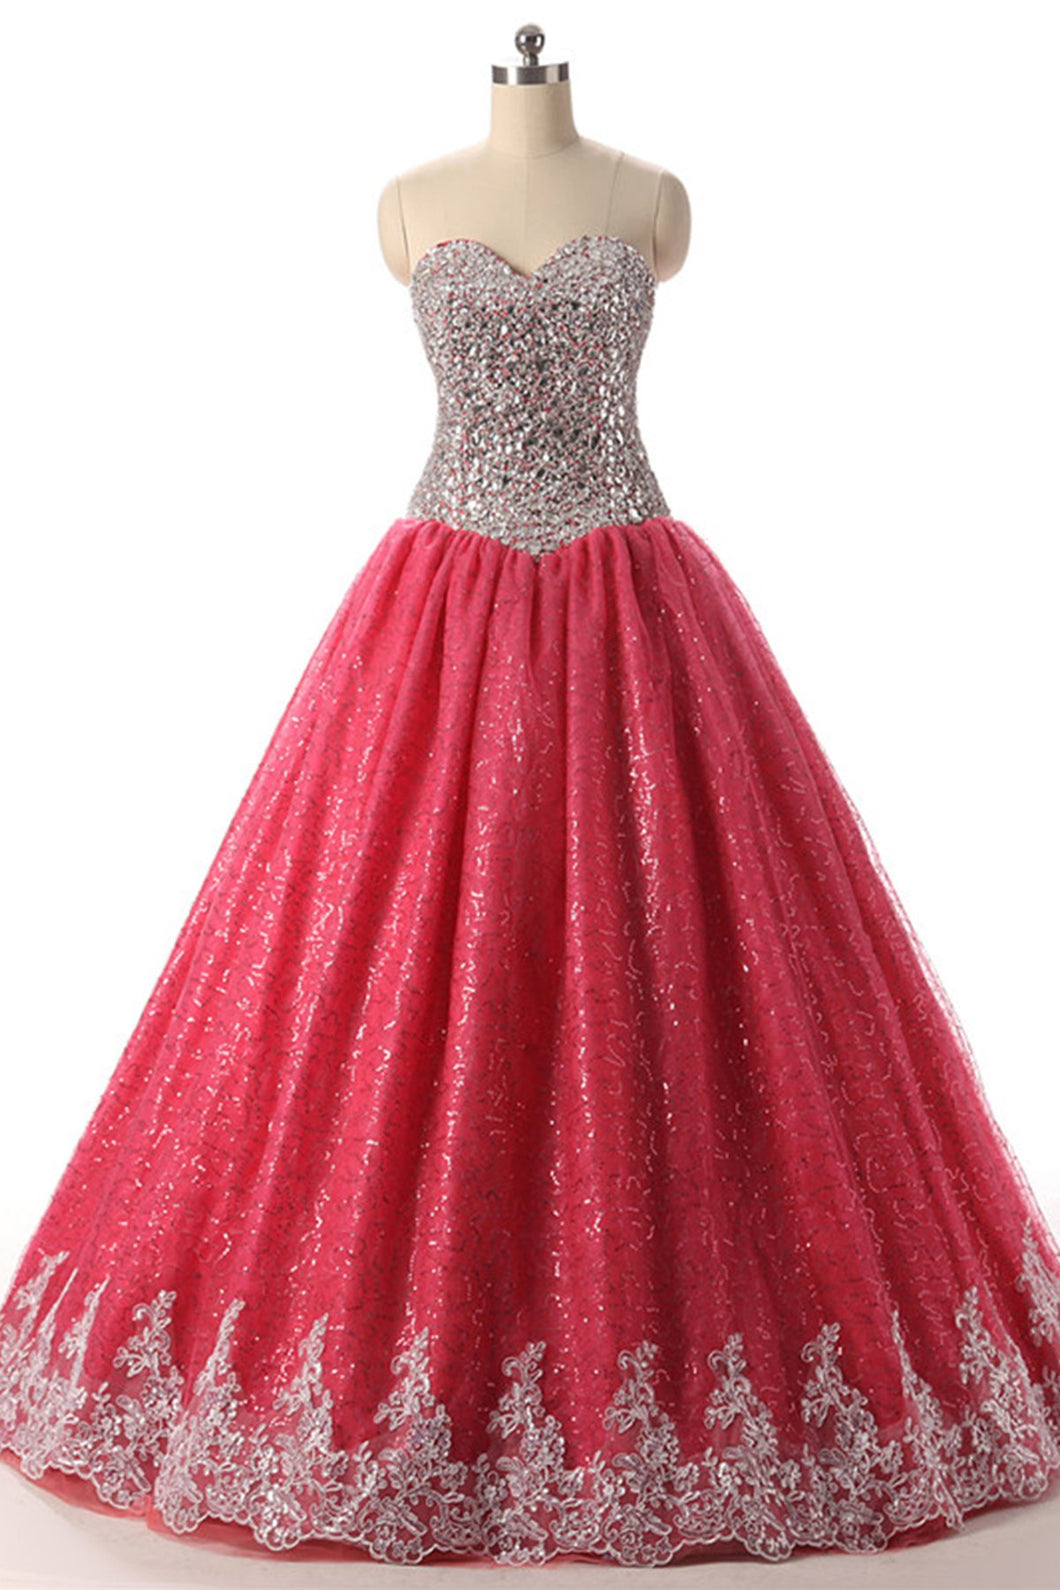 2019 Prom Dresses | Coral Tulle Beaded Long Evening Dress, Senior Prom Dress With Applique